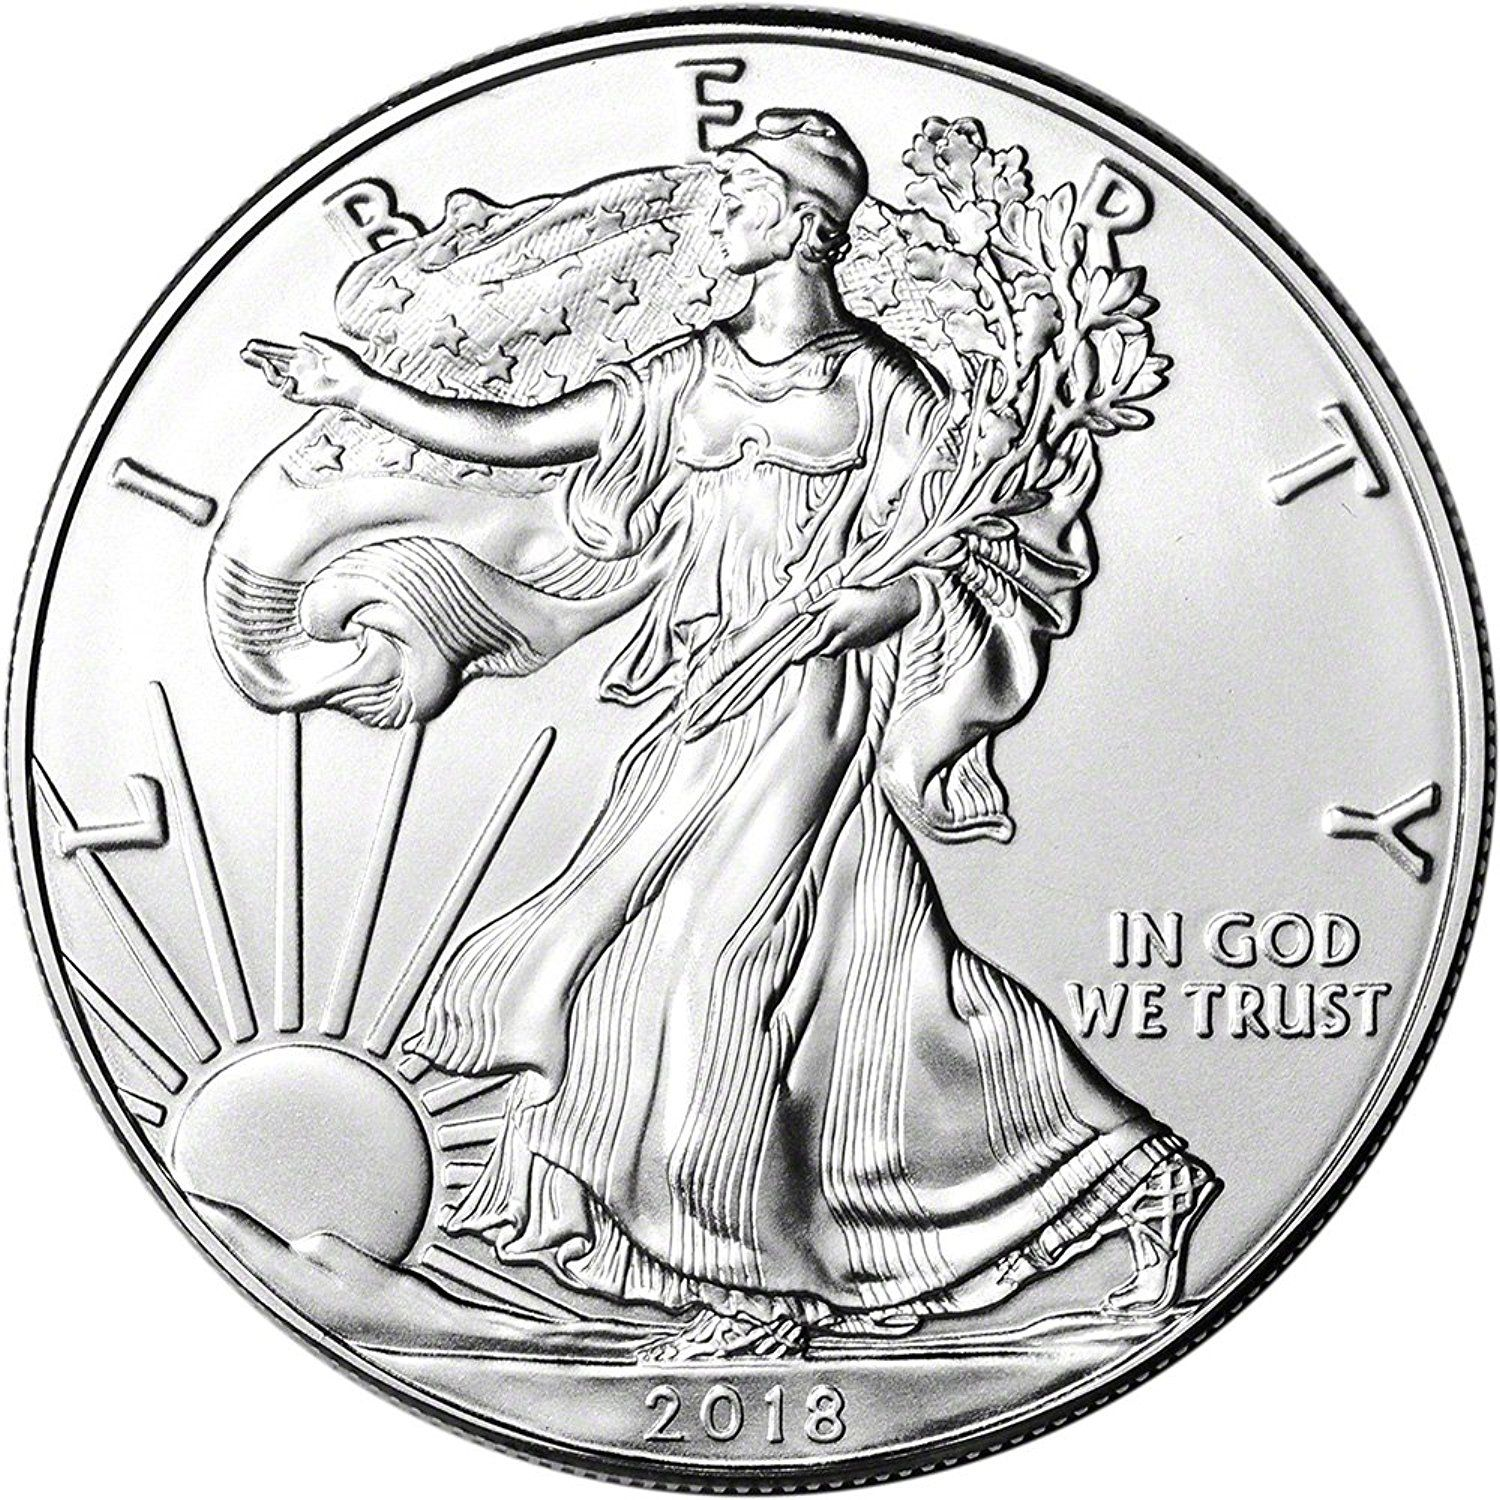 2015 American Silver Eagle Brilliant Uncirculated Condition Actual Silver Weight 1 Troy Oz Silver Bullion Coins Silver Eagle Coins Silver Bullion